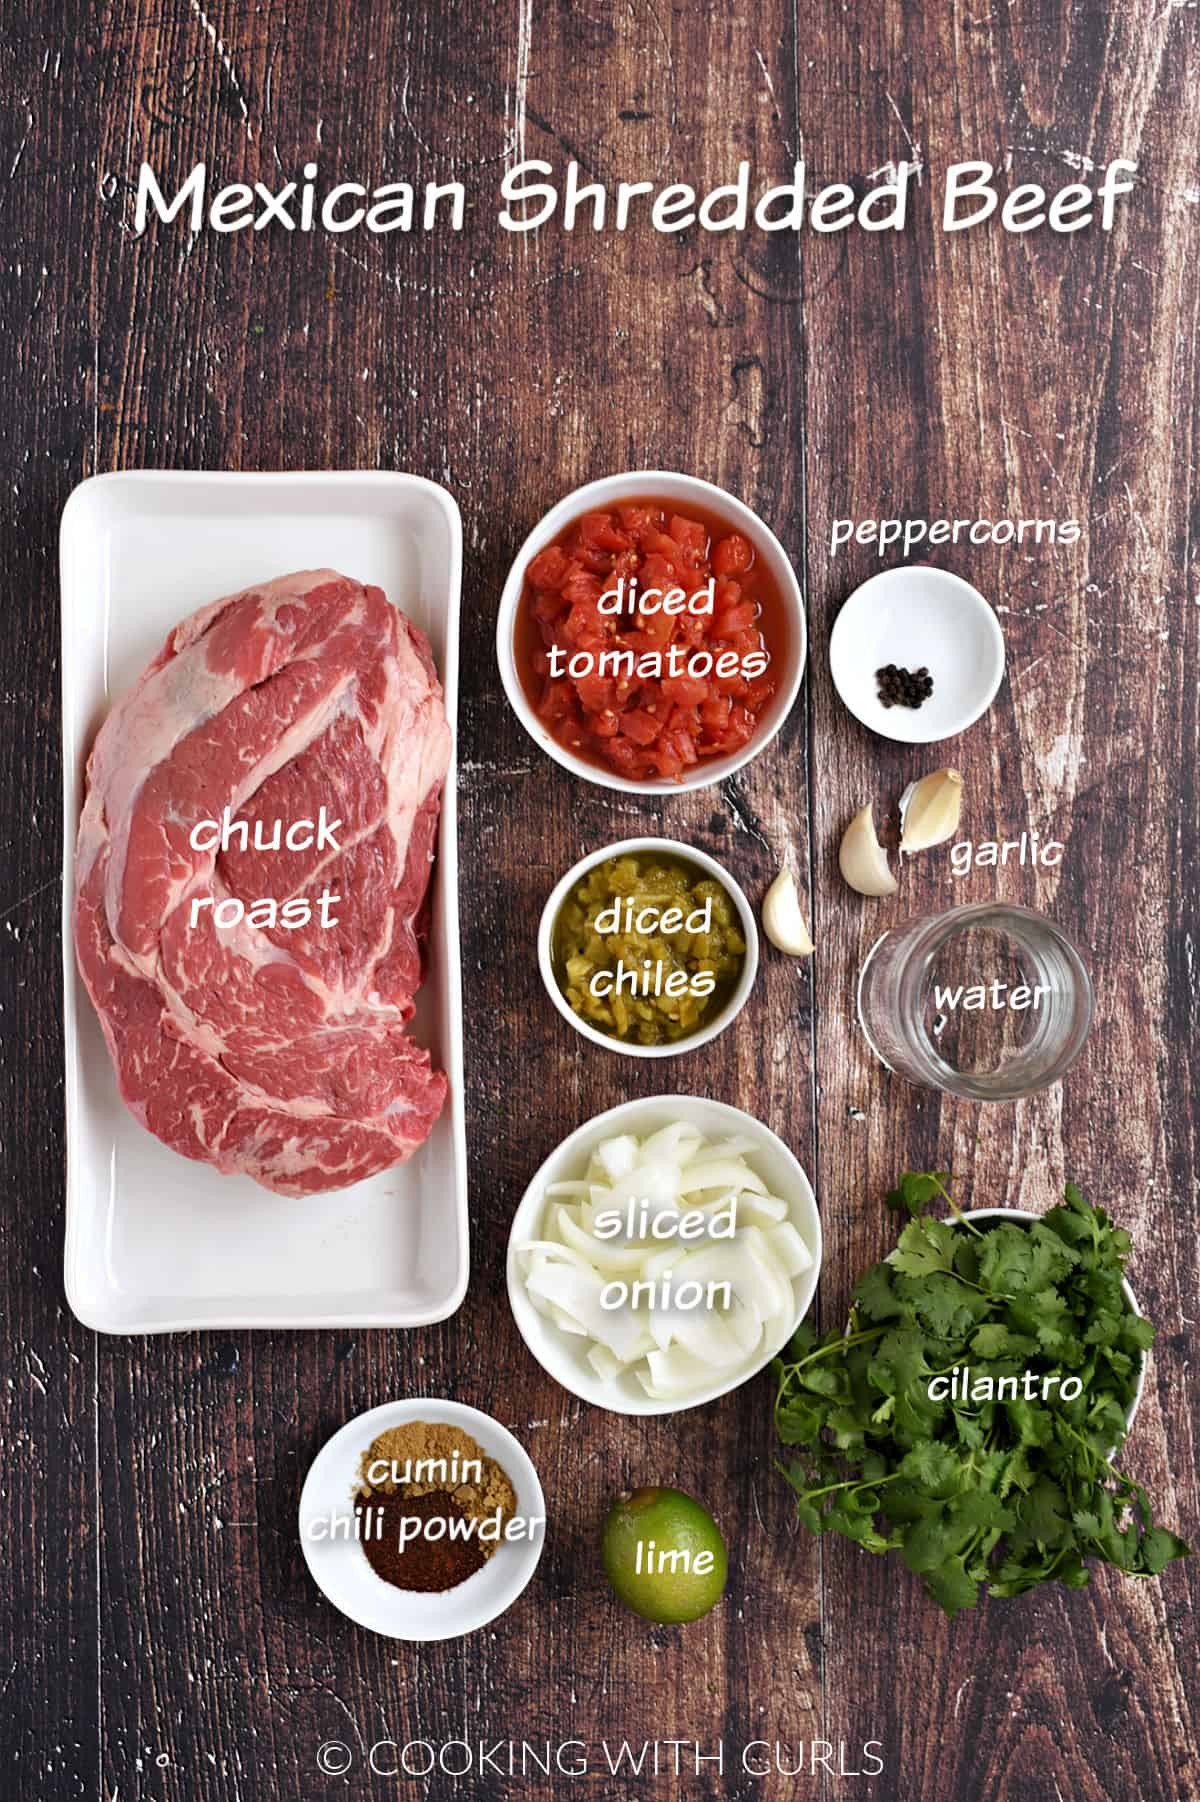 Ingredients to make Mexican Shredded Beef.